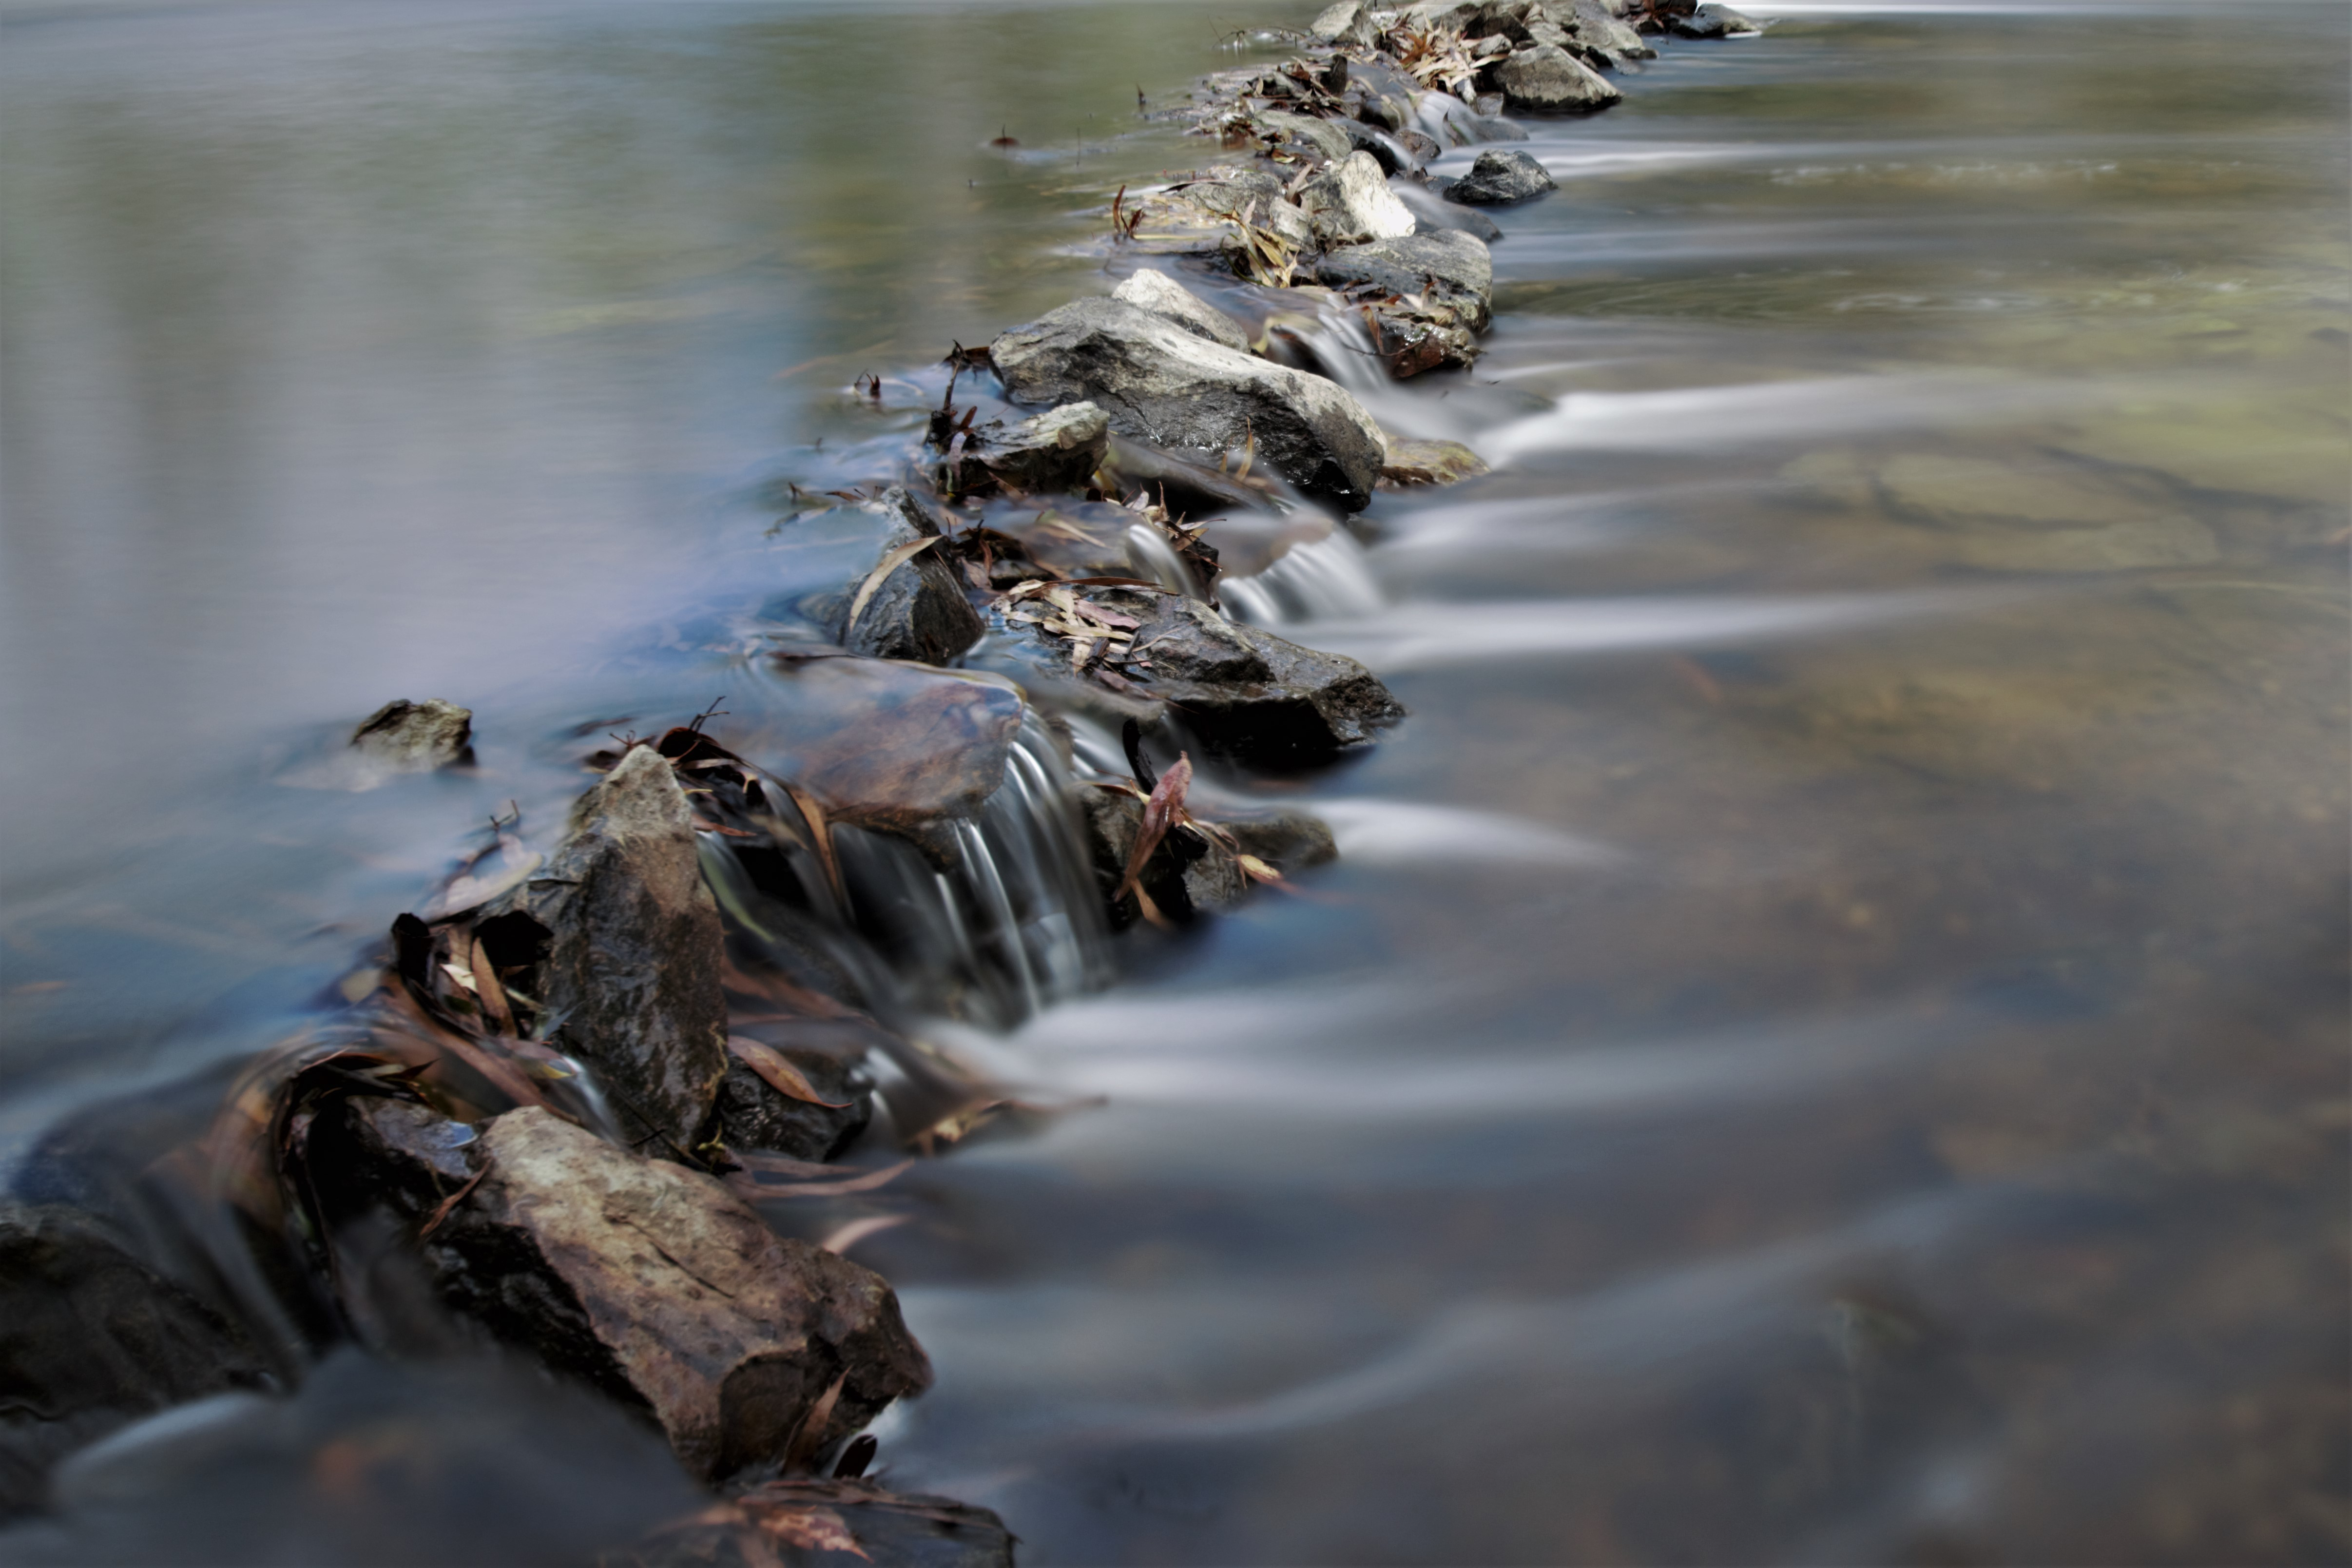 Water flowing over rocks in a river